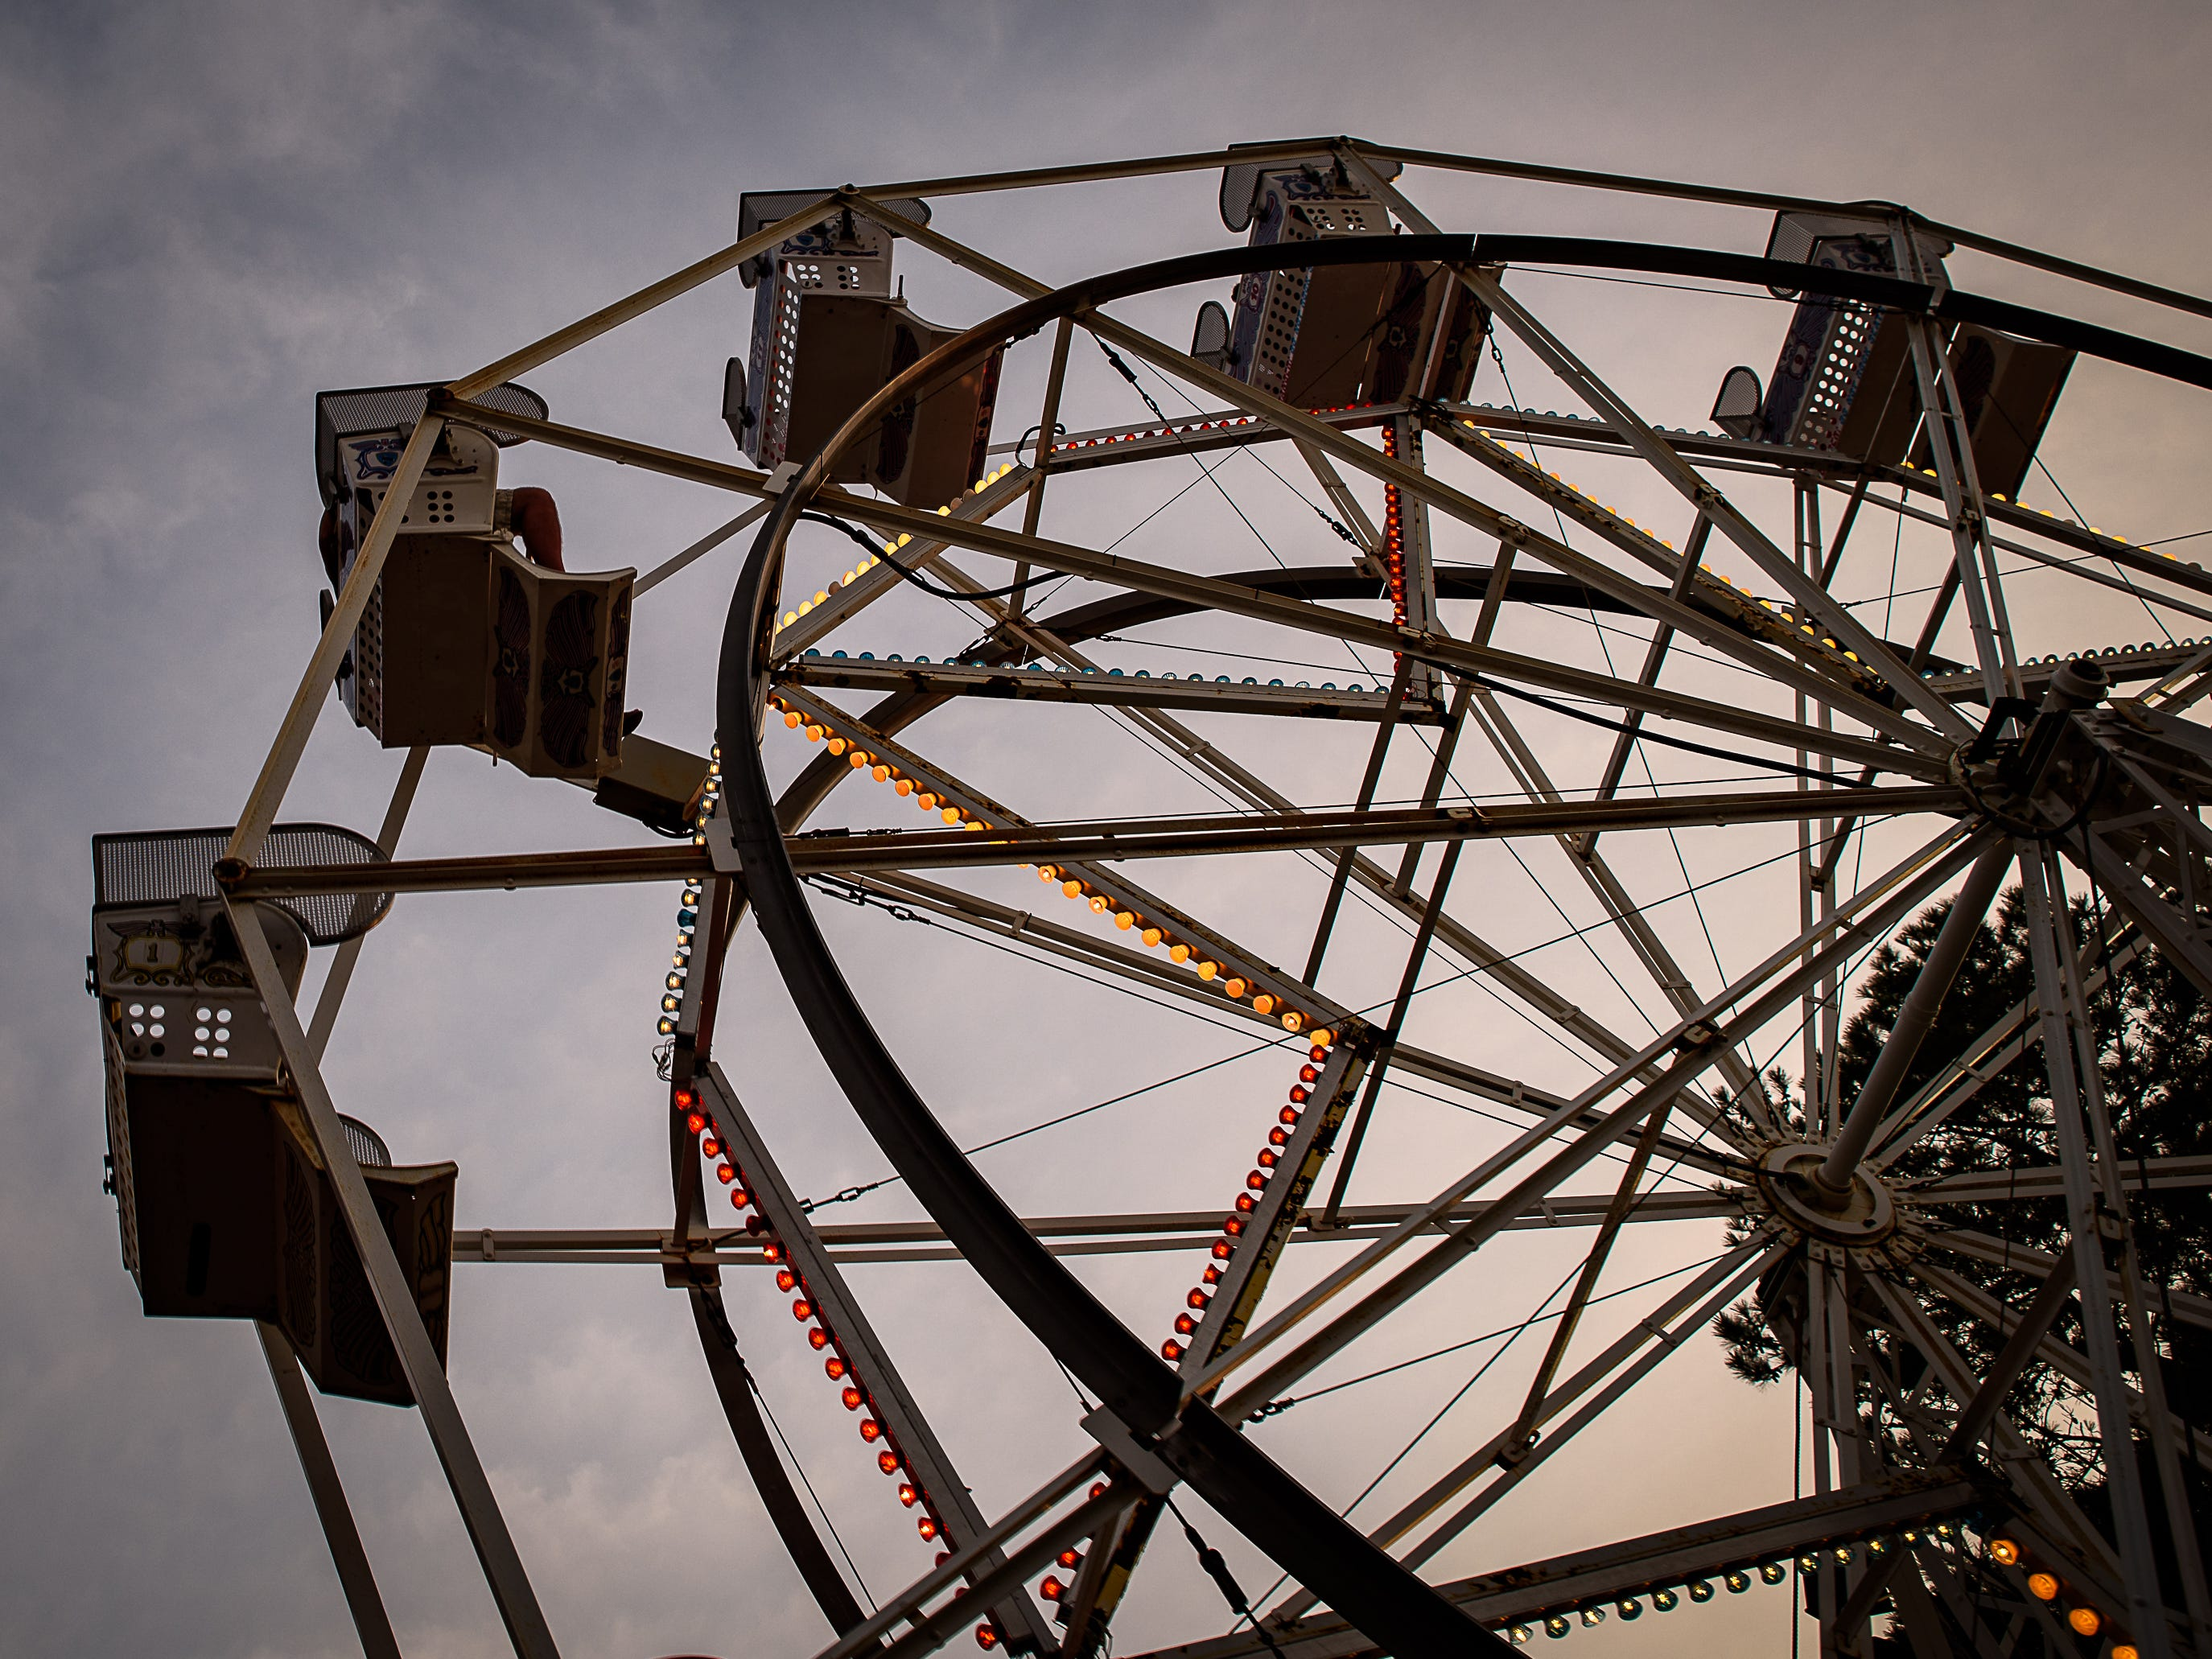 A popular ride, the Ferris Wheel rises into the Chincoteague sky at the Chincoteague Fireman's Carnival.